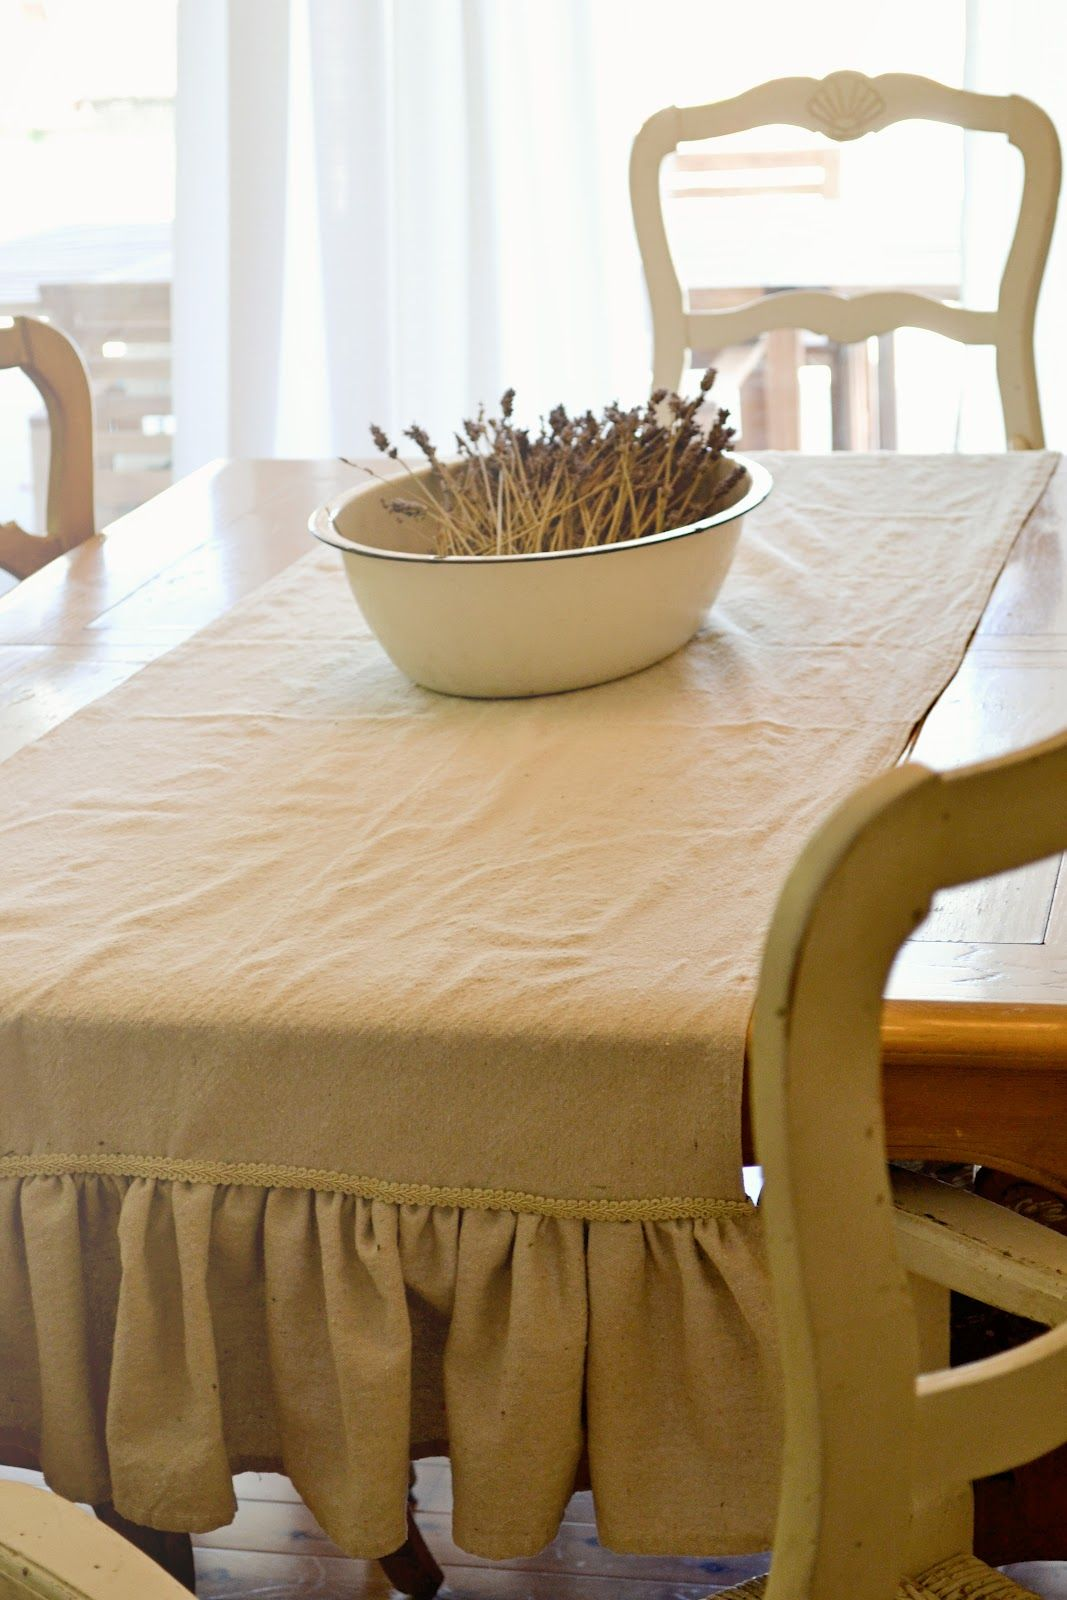 A Salvaged Home: A Simple Ruffled Table Runner.  Adorable!